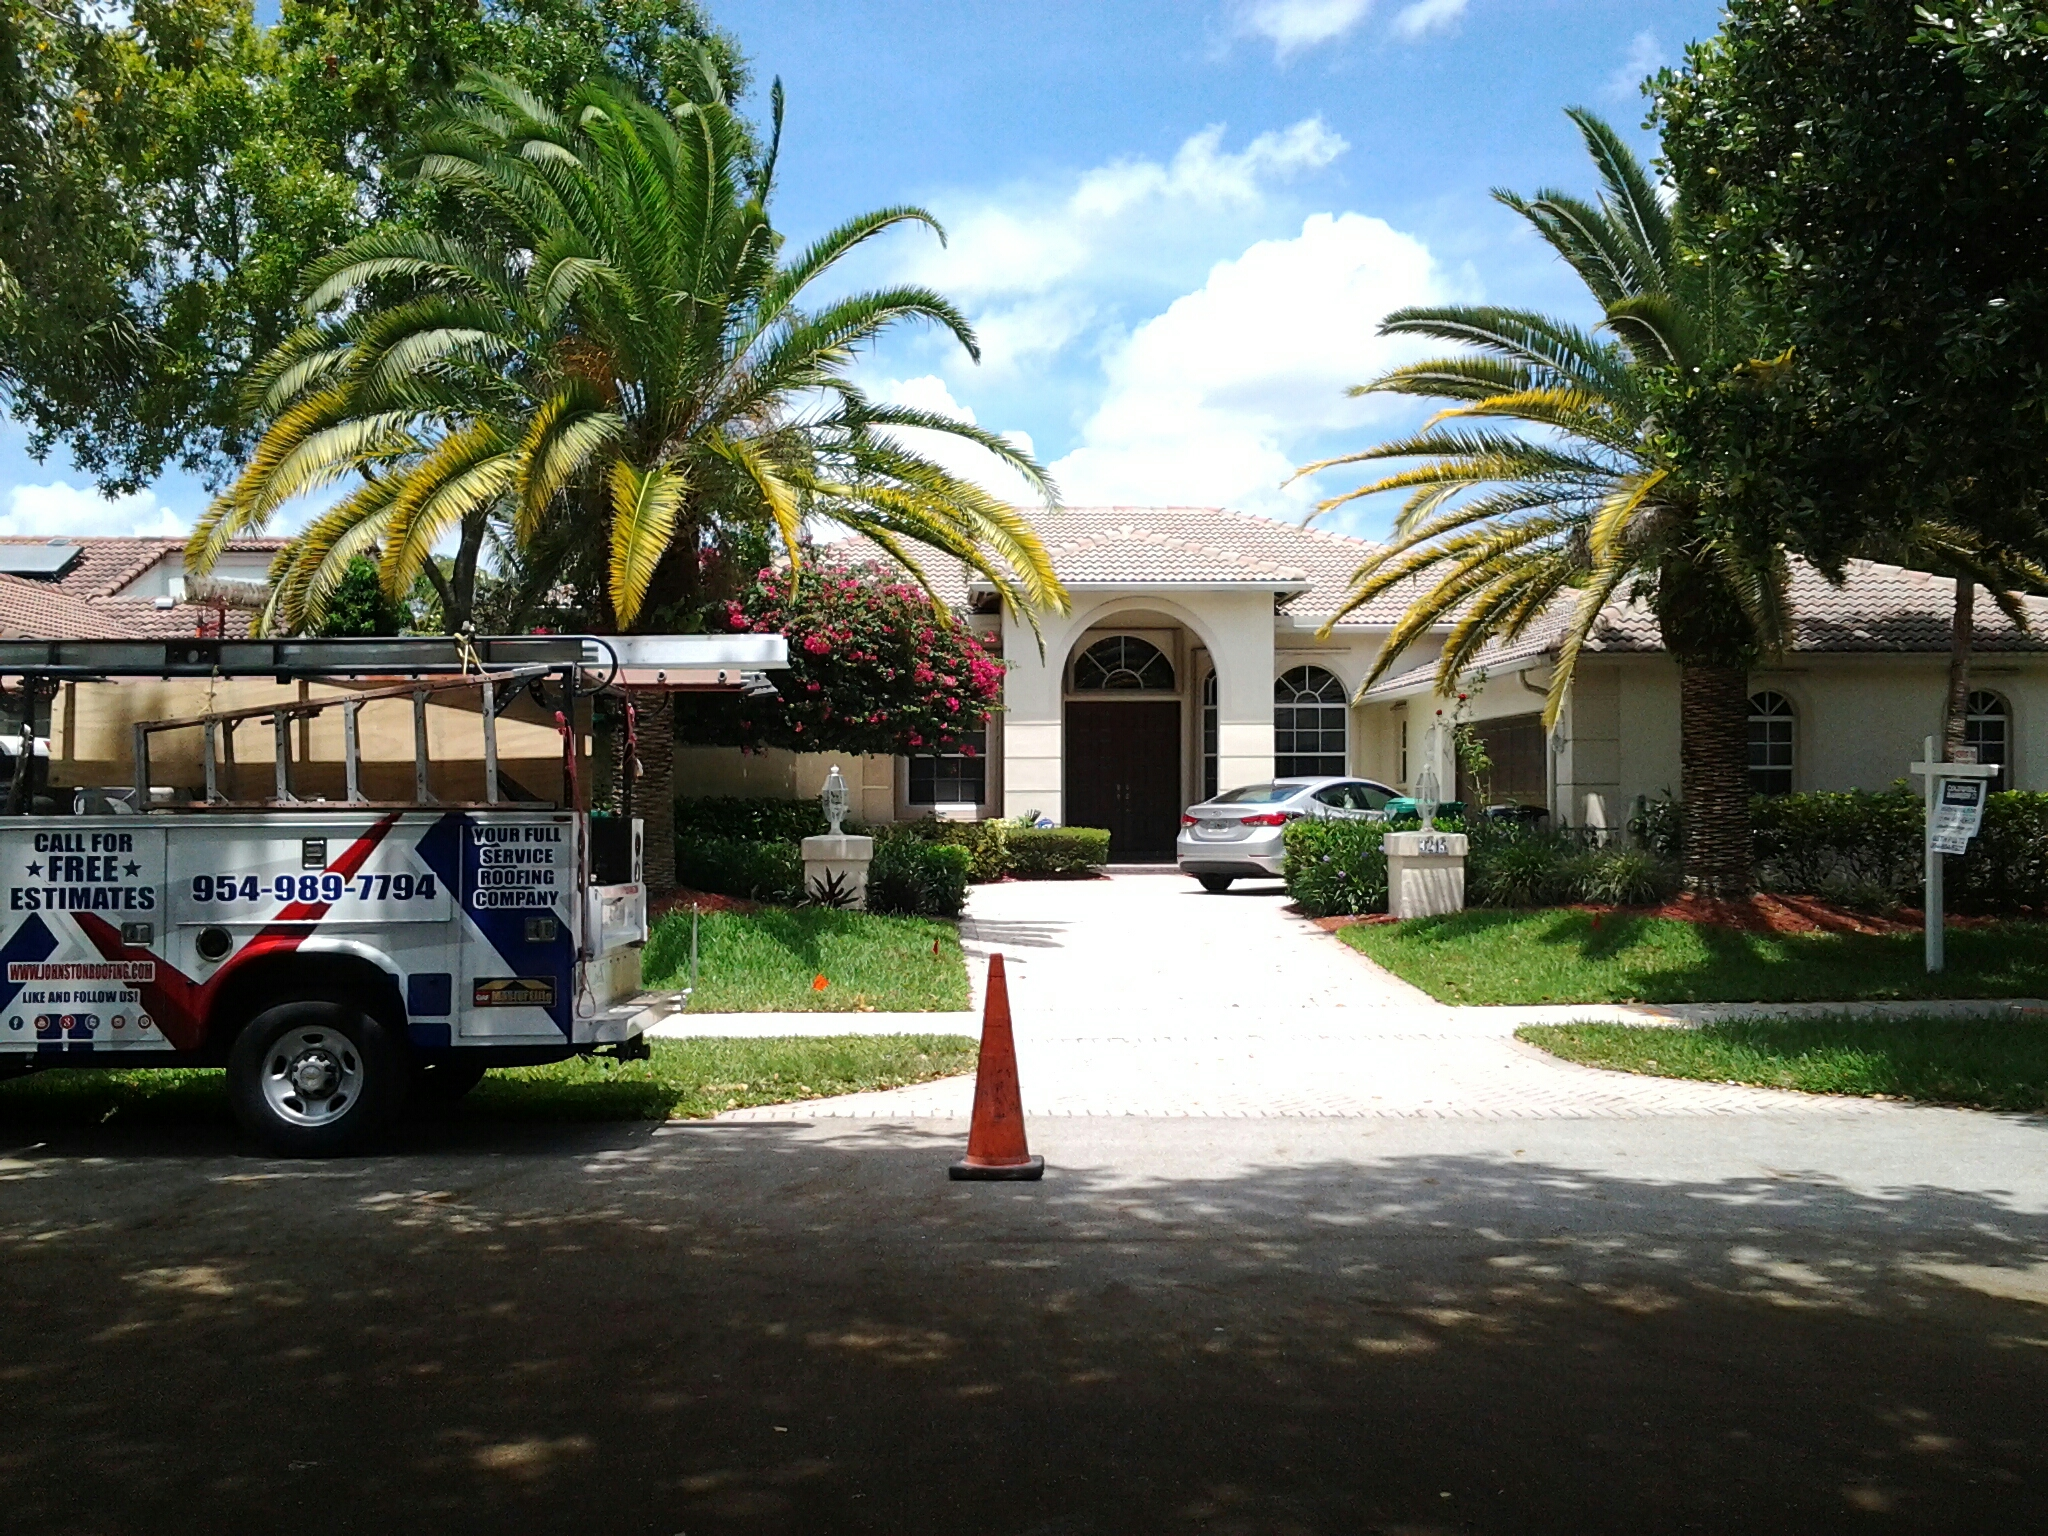 Hollywood, FL - Tile roof repair in the city of cooper city fl this repair is being done by Earl w Johnston roofing company Jos? end Walter are you repair technicians